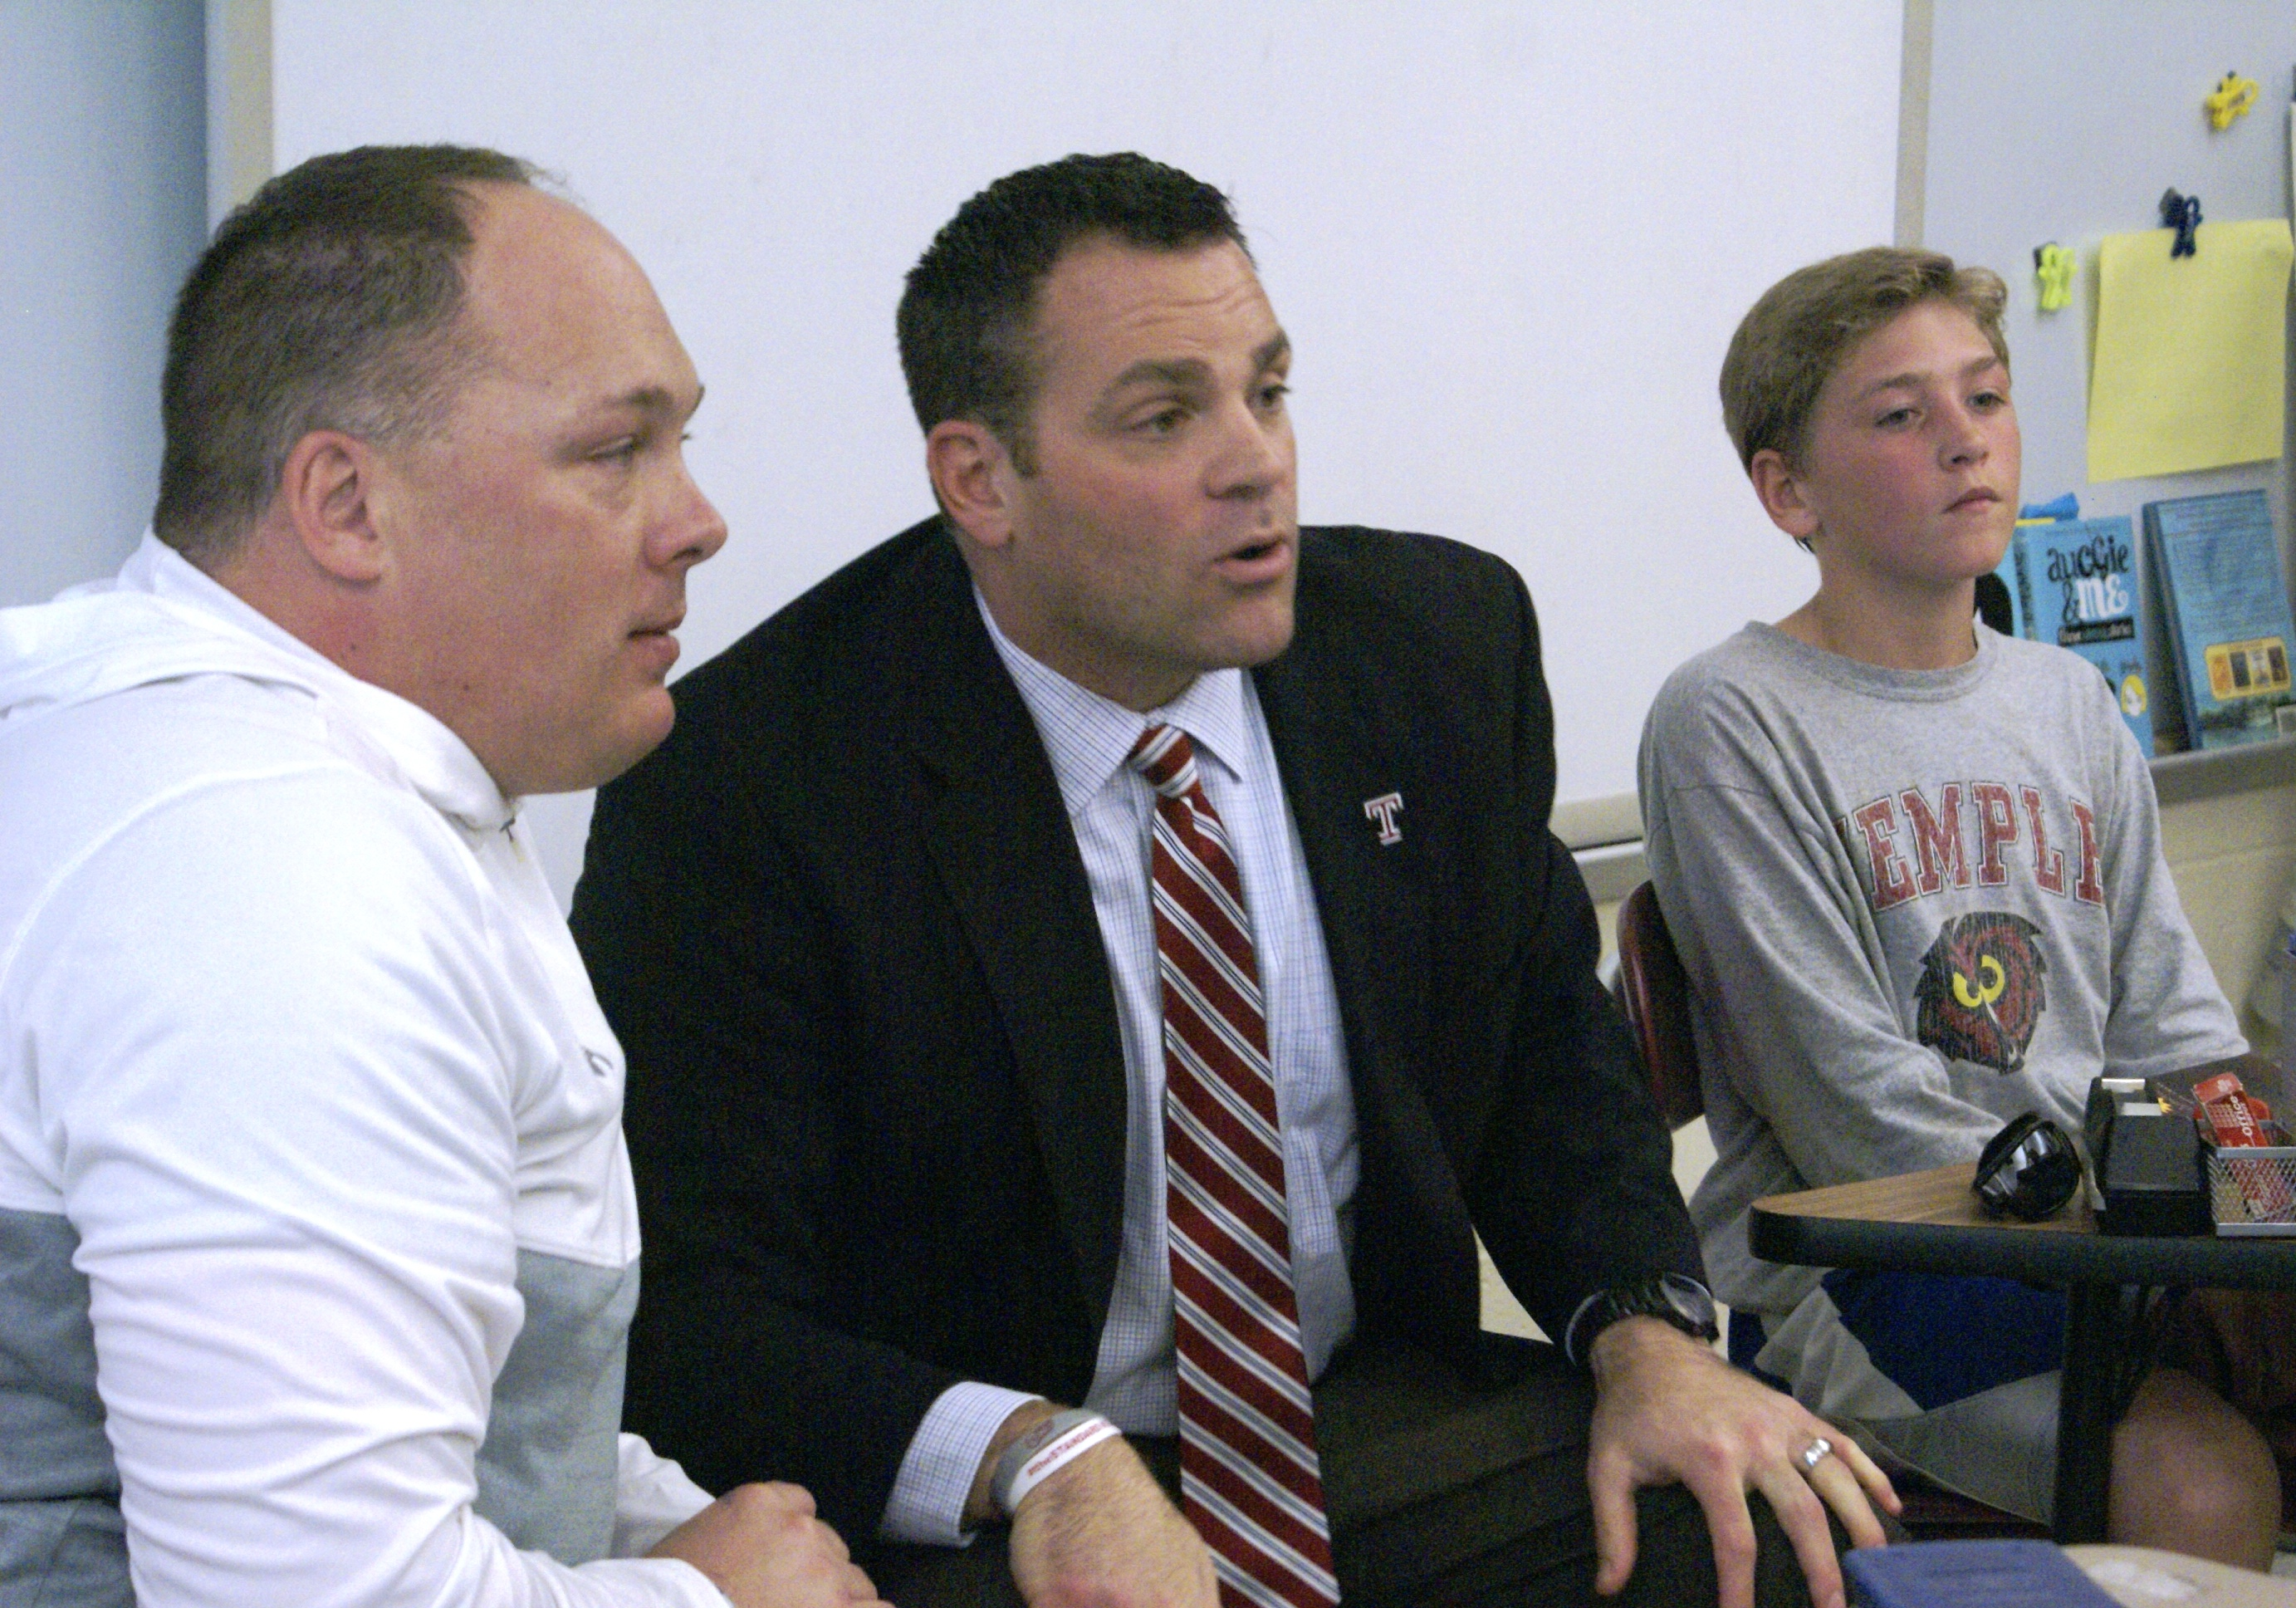 450c9c8fb Temple Football Coach and Athletic Director Visit Copper Beech As A ...